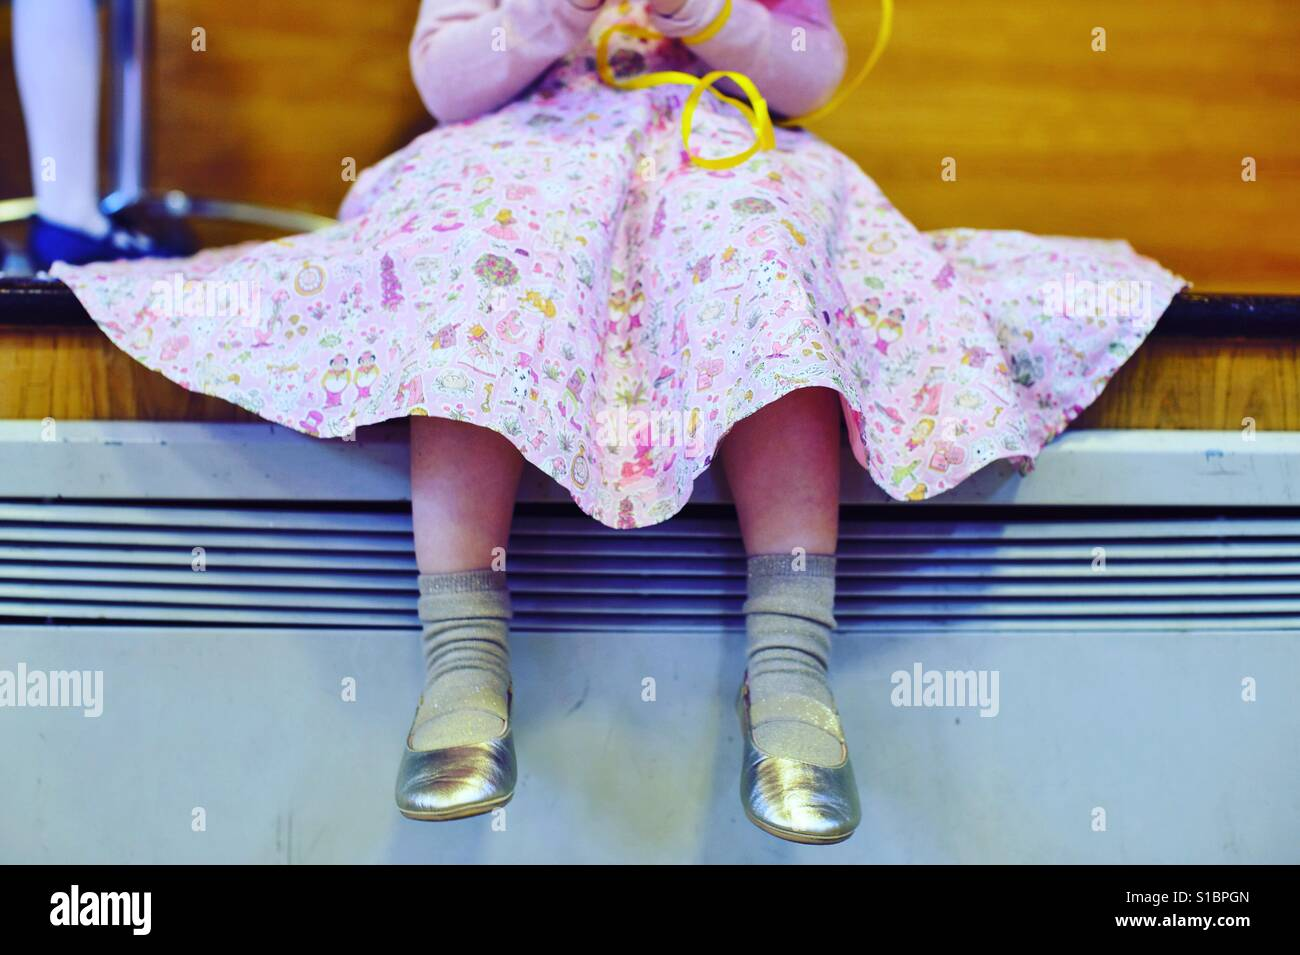 Little girl sitting with good shoes and pink full skirt - Stock Image